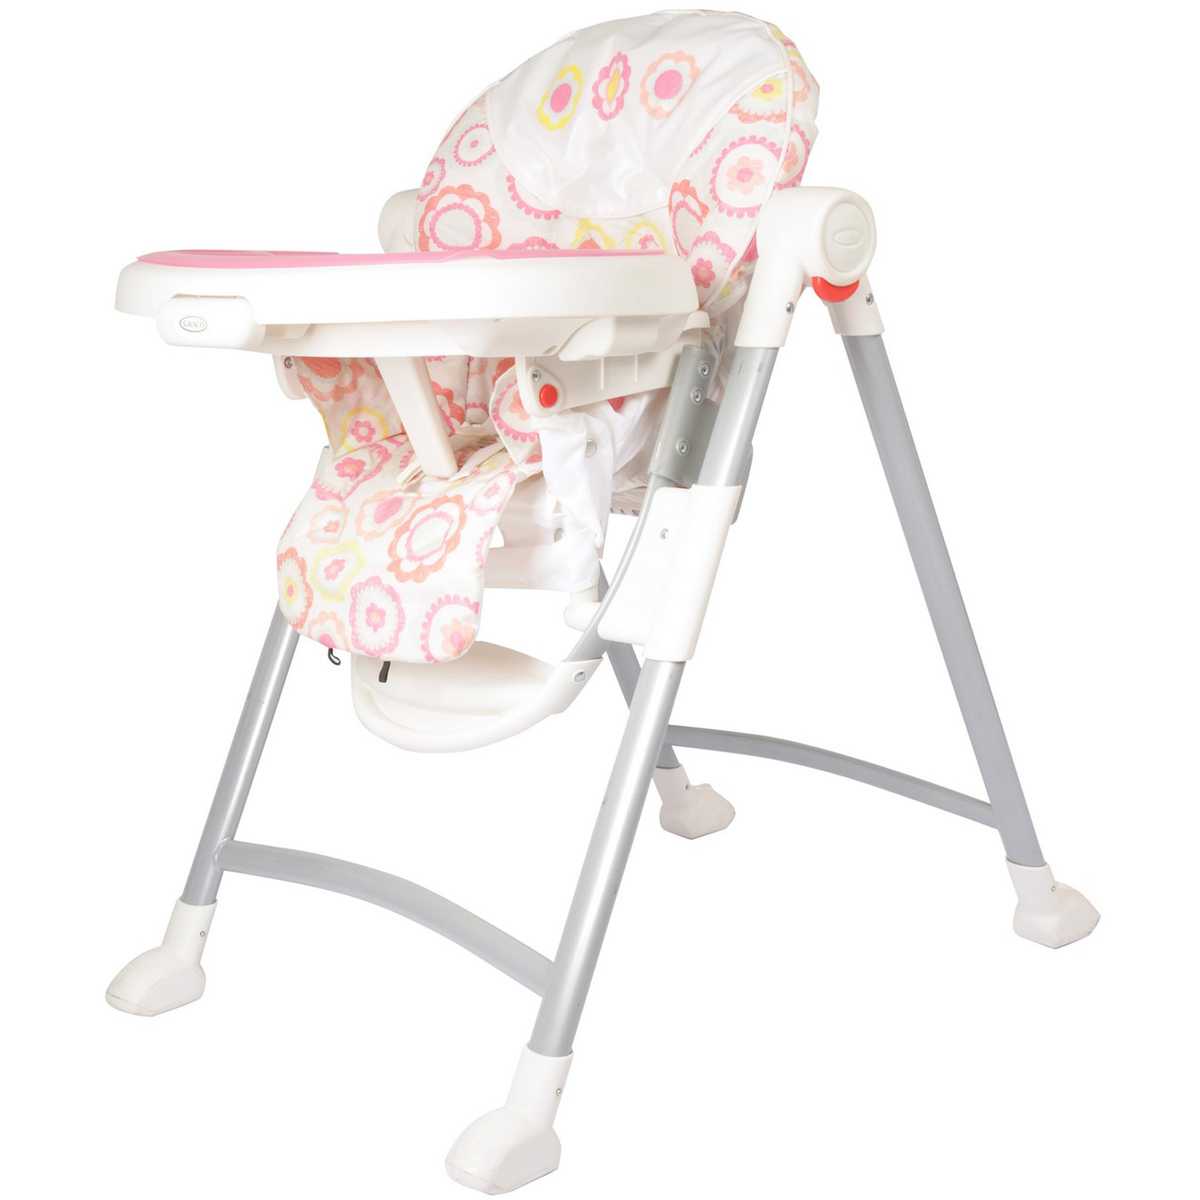 Buy Graco Baby High Chair 1855930 Online Lulu Hypermarket Ksa